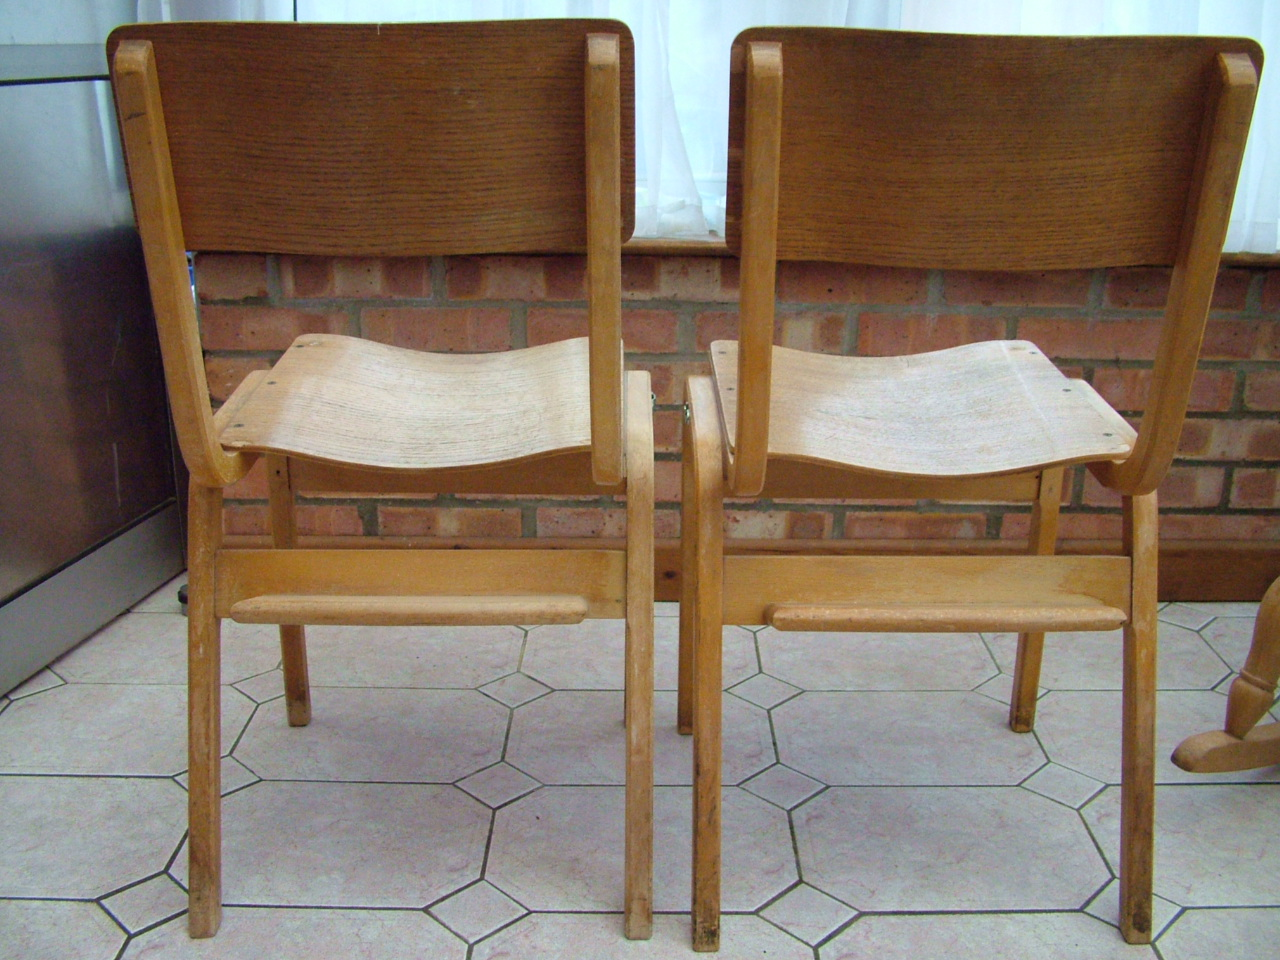 Pulpit Chairs For Sale Boots Church Chairs For Sale Wood Church Chairs All Chairs Design